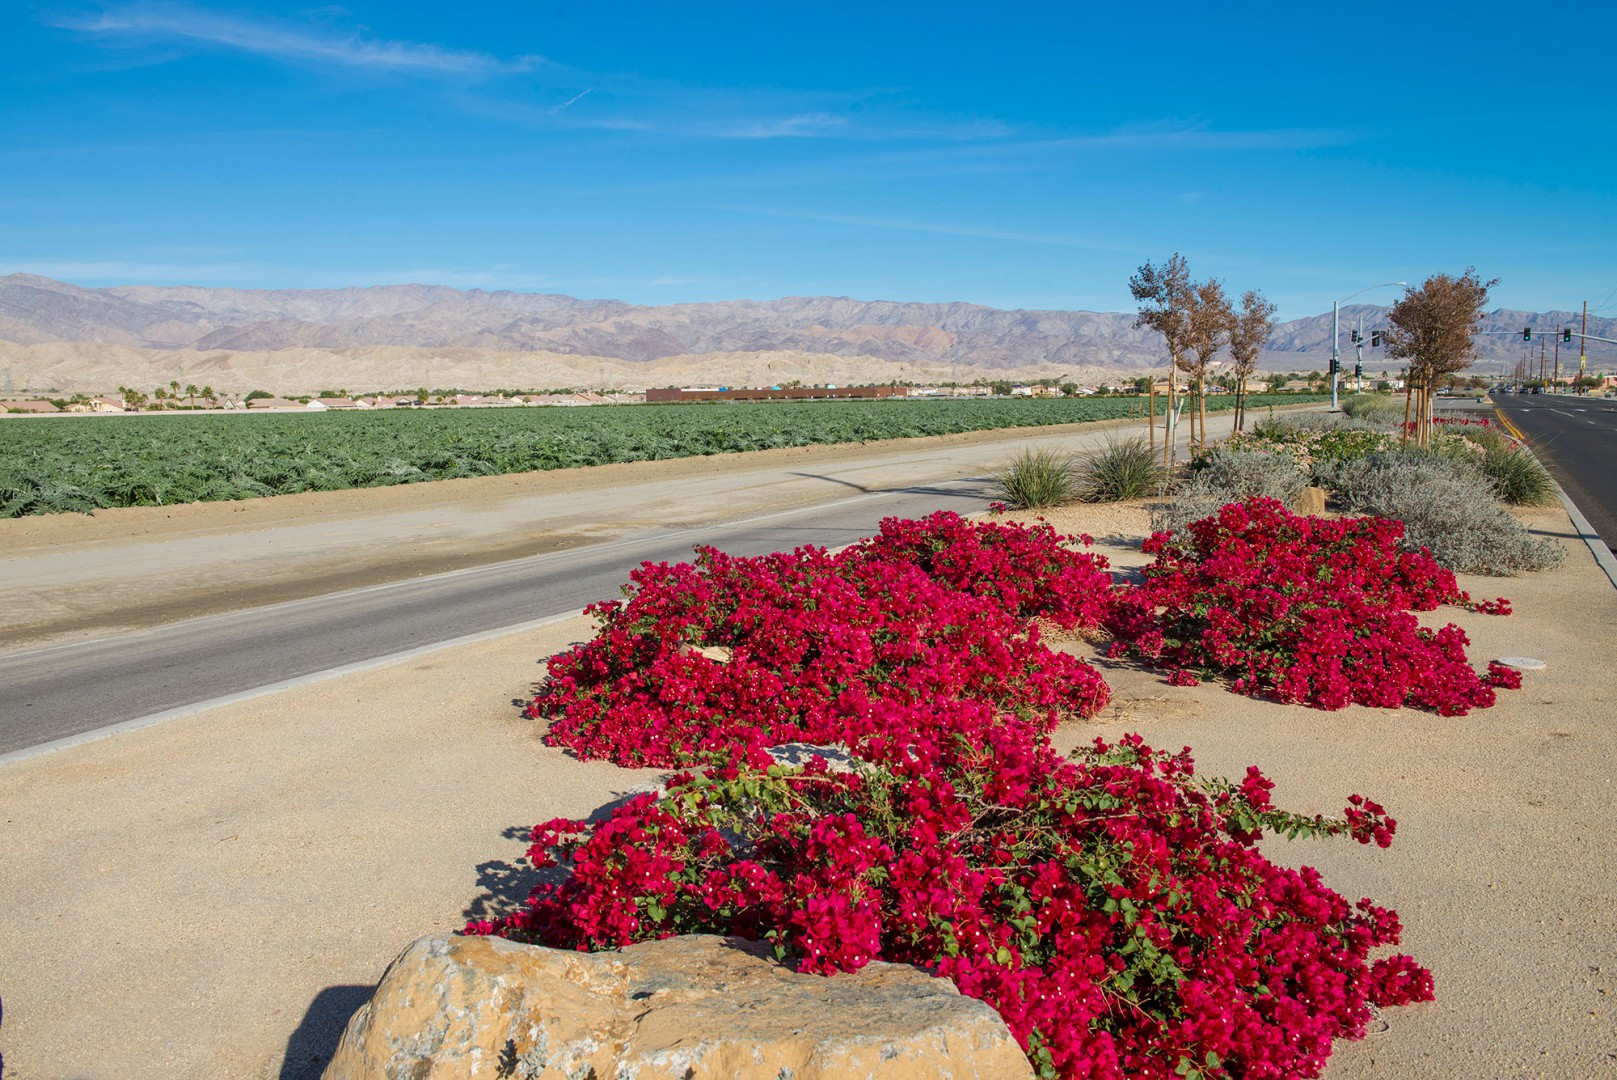 Plain road view located in Indio County California